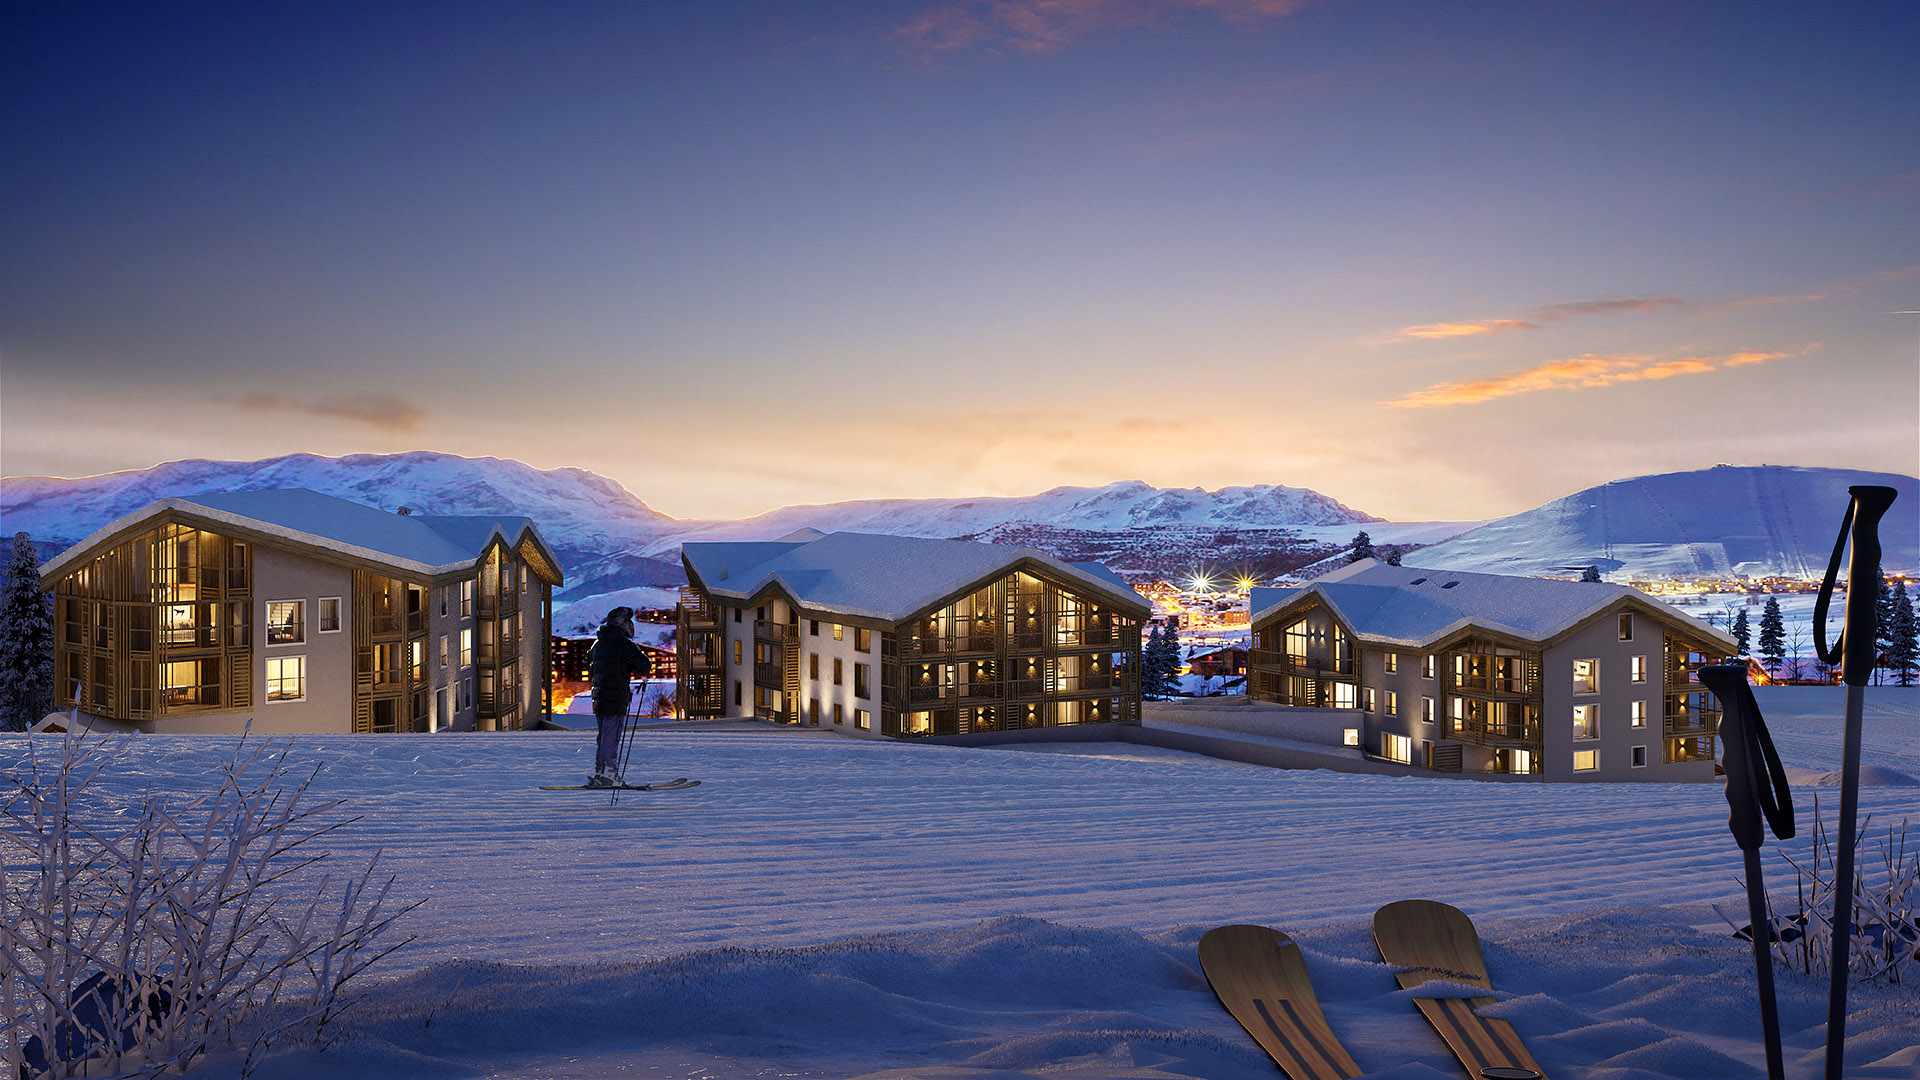 3D perspective and integration of mountain chalets in a valley in winter